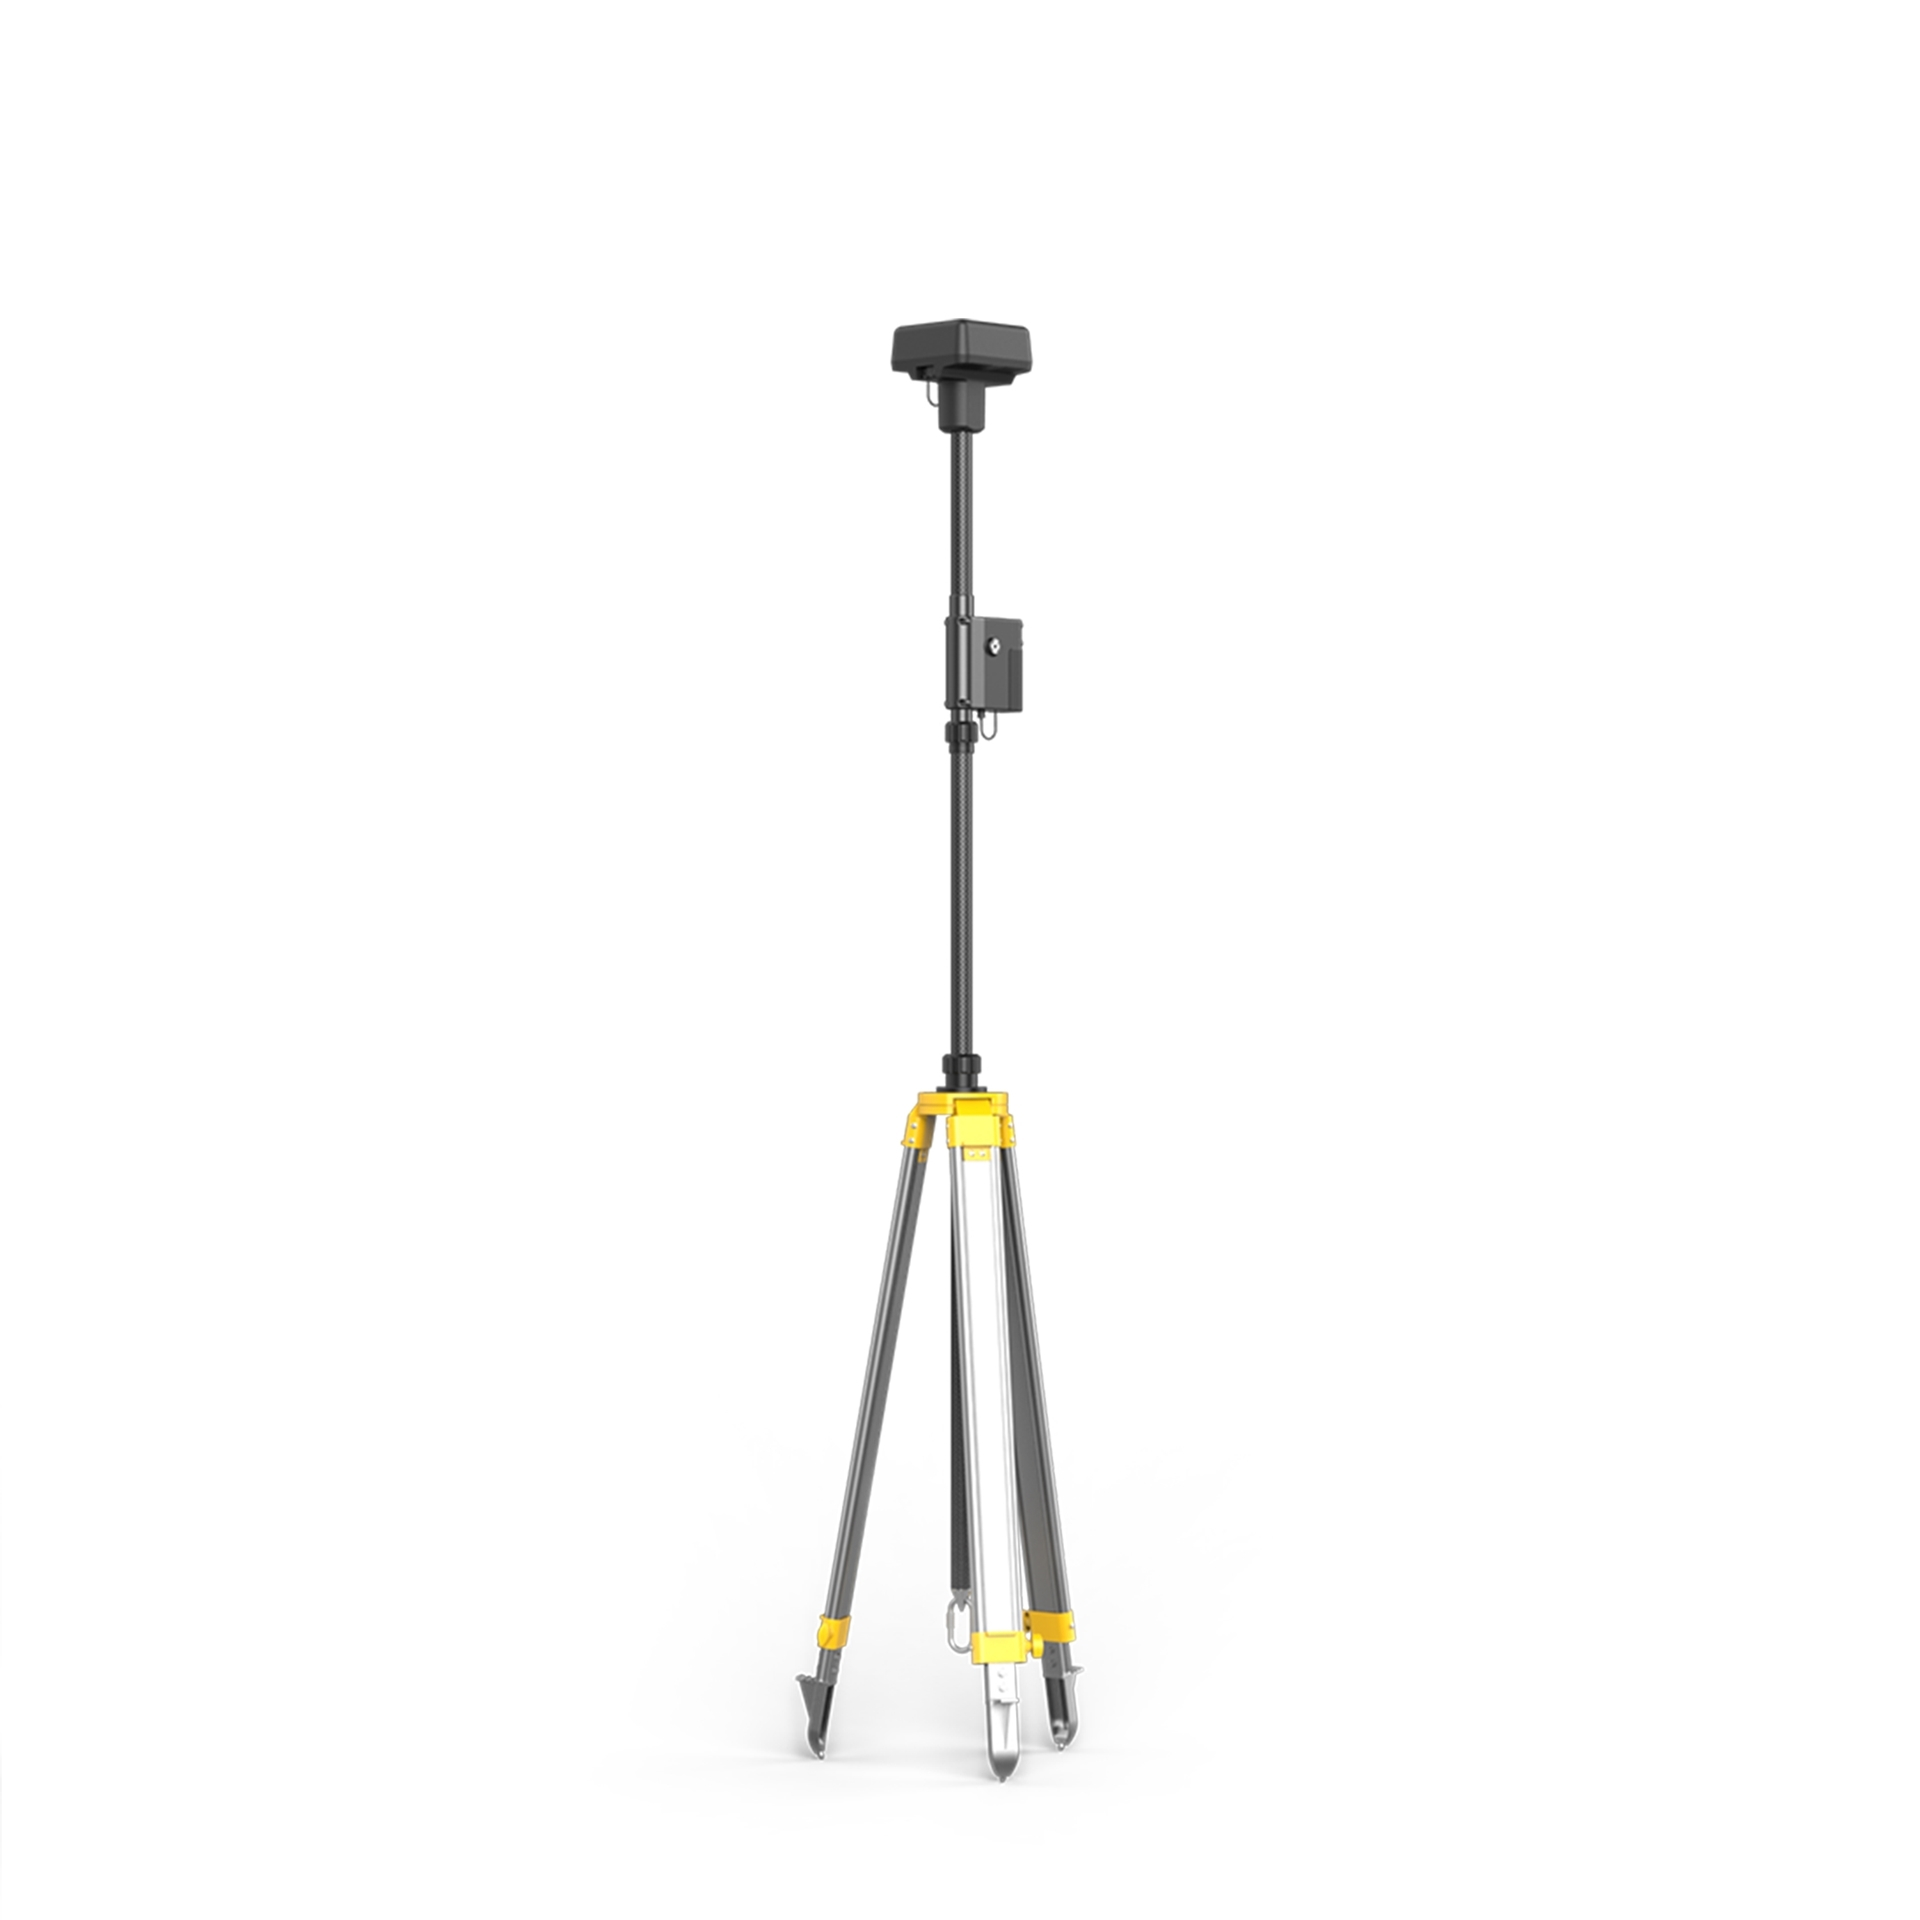 Picture of D-RTK2-MS  High Precision GNSS Mobile Station Tripod Included (Eu)  DJI